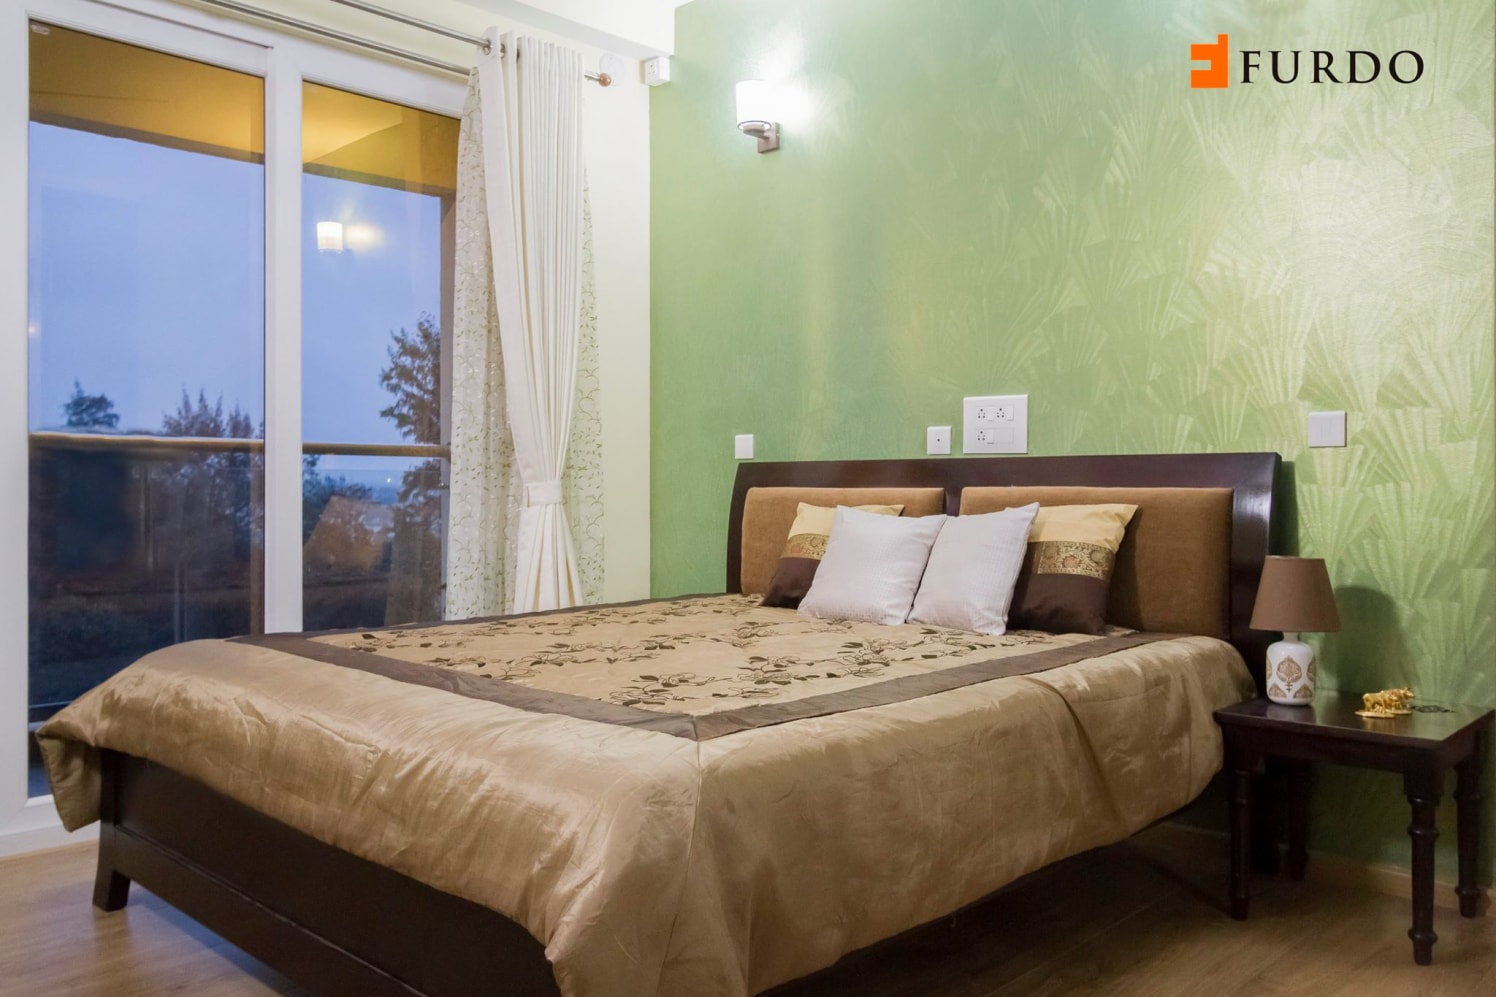 Bedroom With Green Wall Art and outside view by Furdo.com Bedroom Contemporary | Interior Design Photos & Ideas